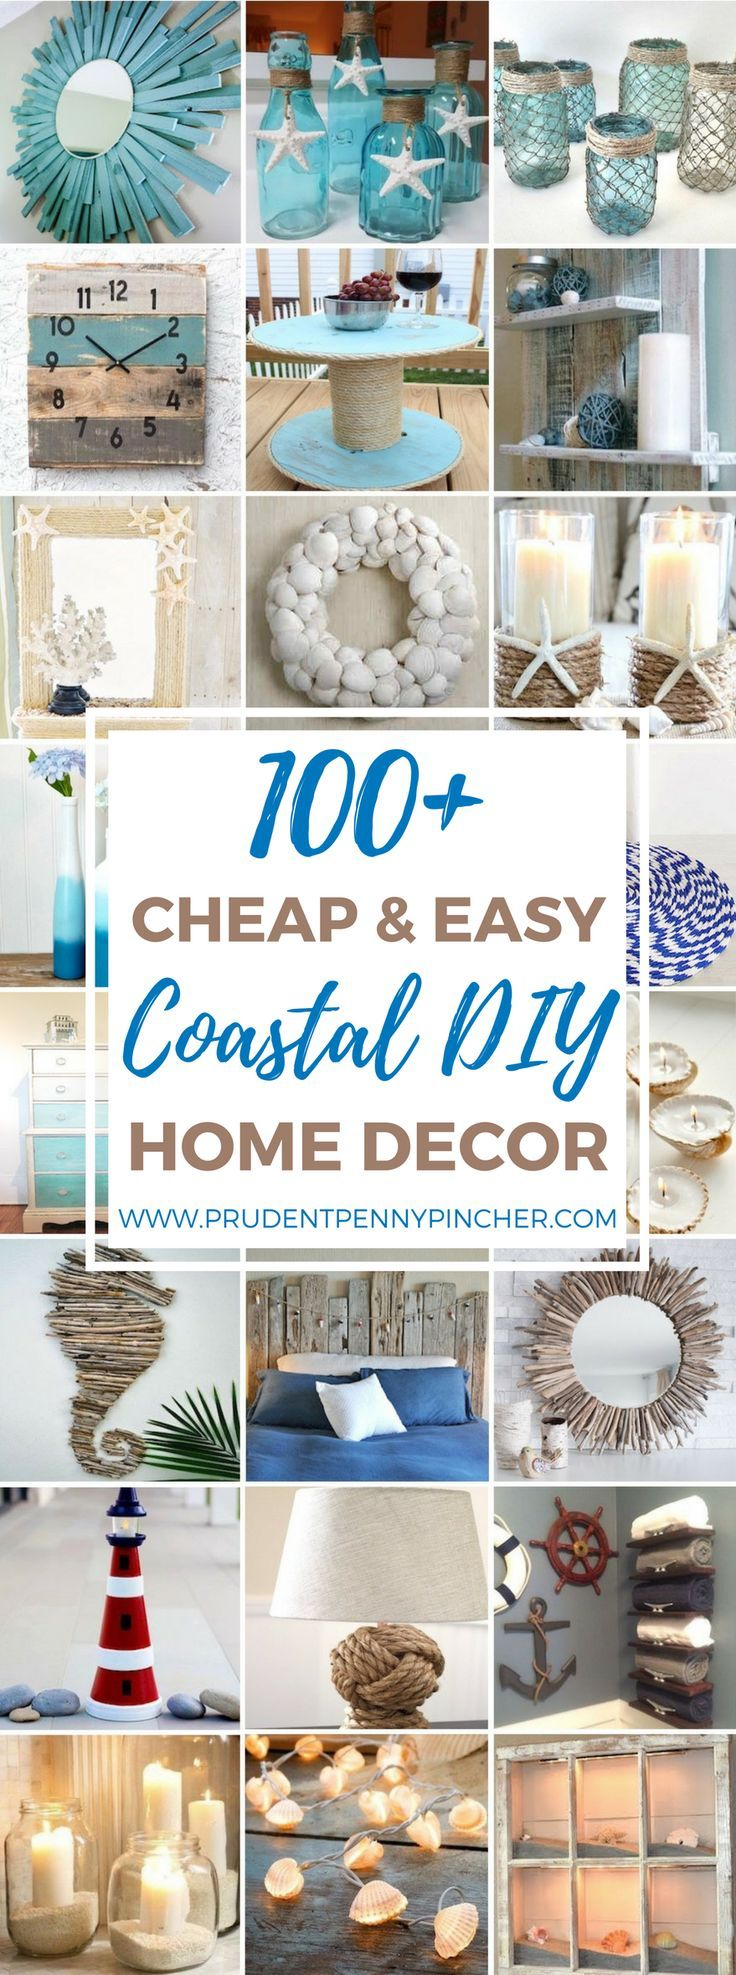 Here is a summary of the best cheap and easy DIY home decoration projects on the coast